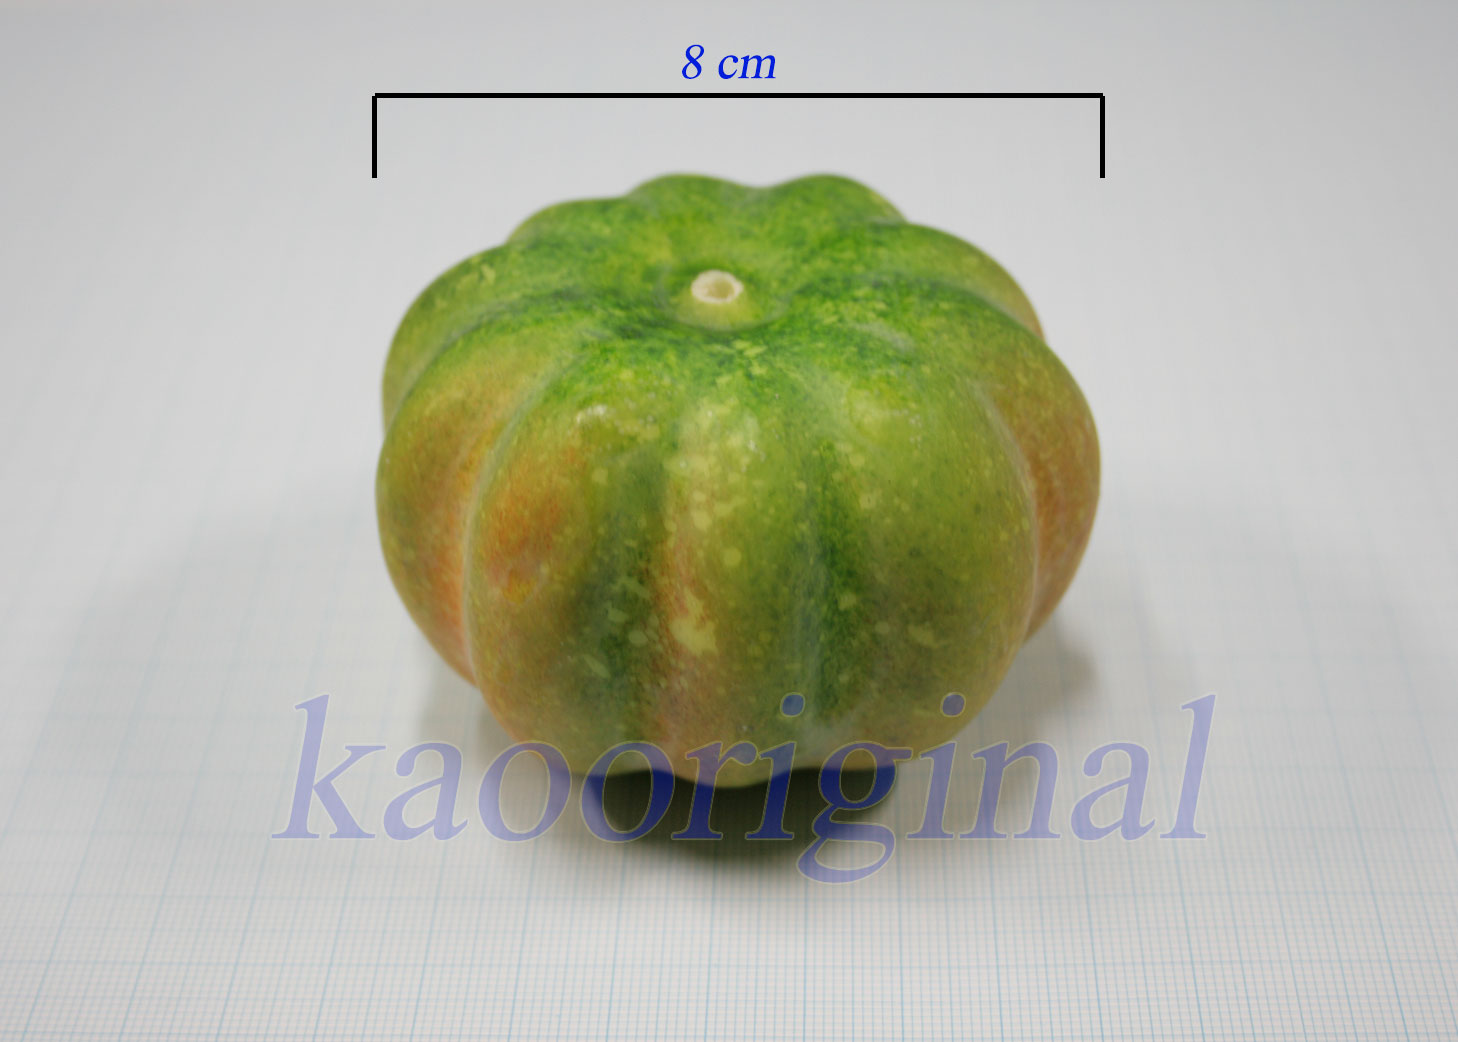 Artificial pumpkin 8 cm <br> ฟักทอง 8 cm <br> SKU: 9011 - 1 Green spot